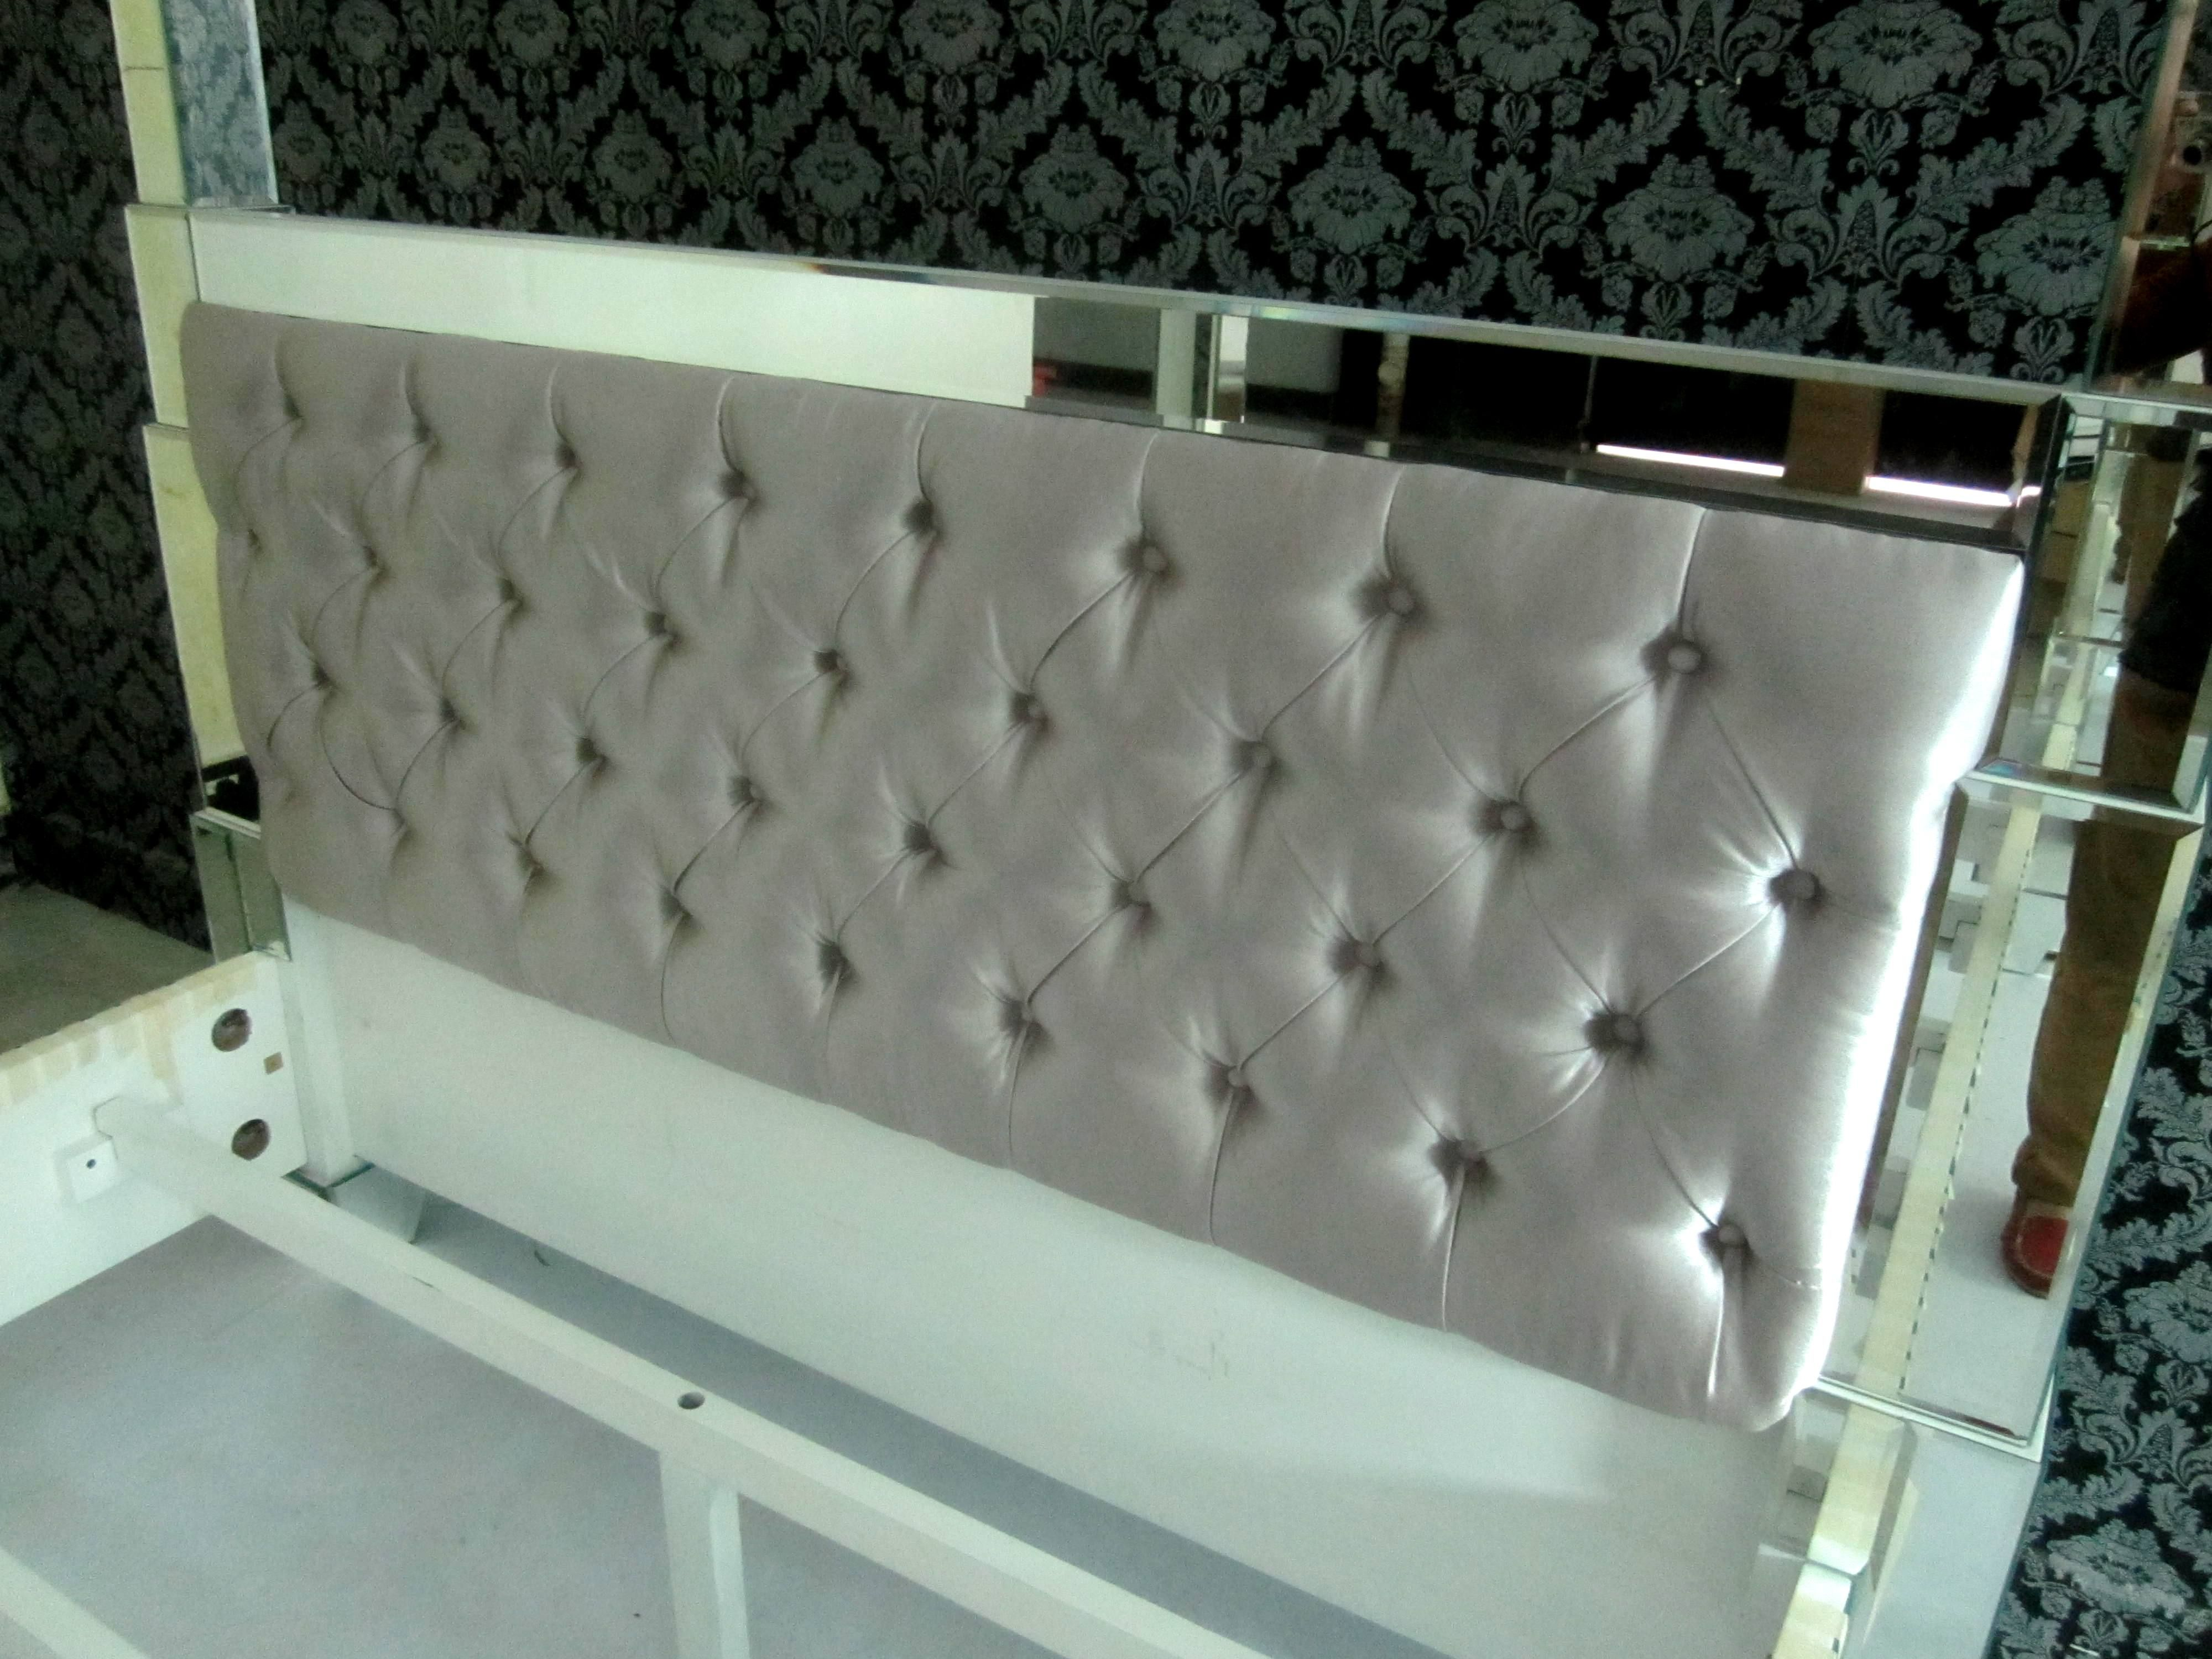 A Mirrored Prism Bed Being Made With Silver Tufted Velvet